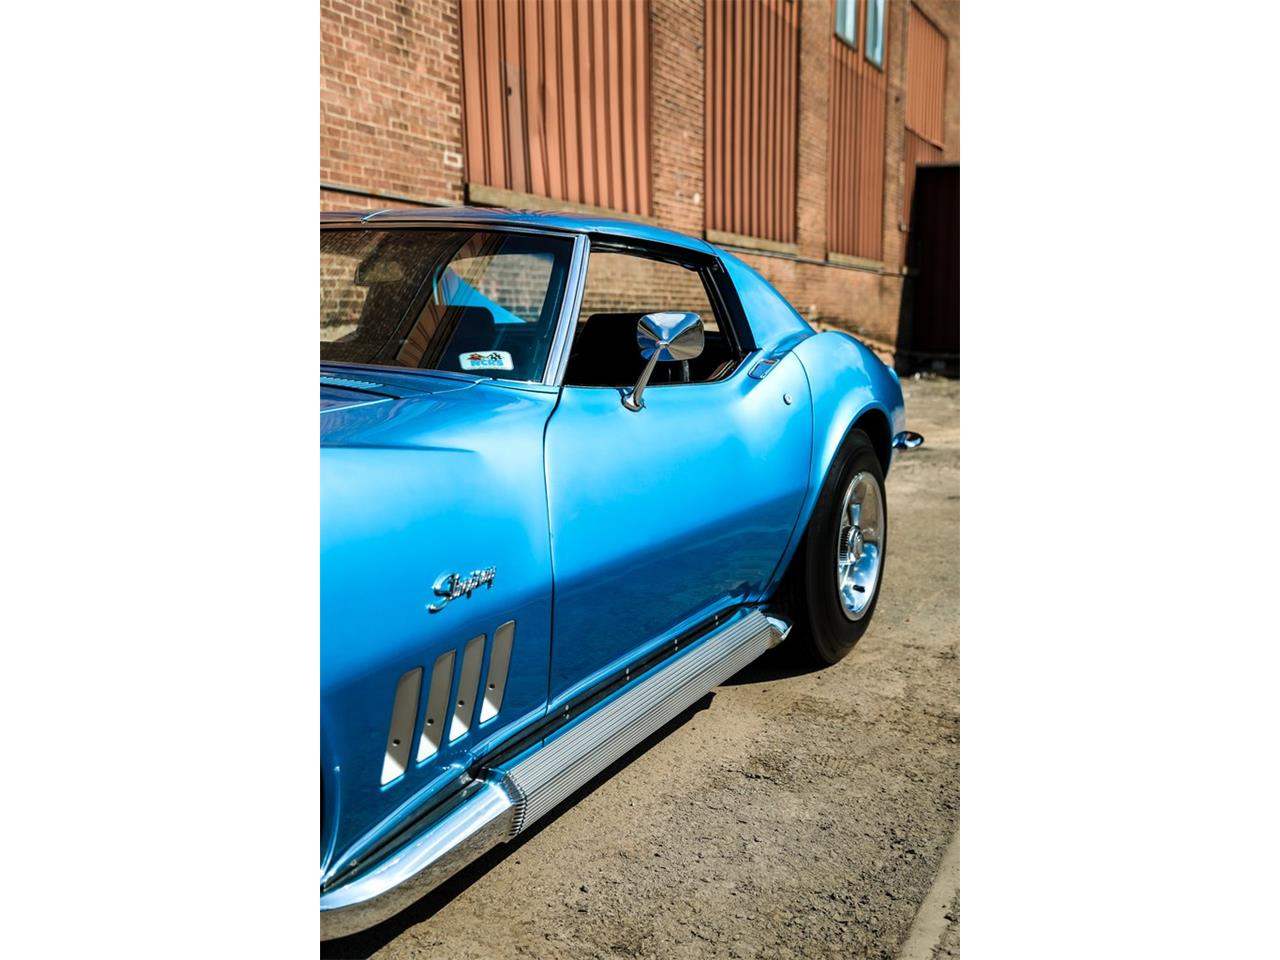 1969 Chevrolet Corvette for sale in Wallingford, CT – photo 71